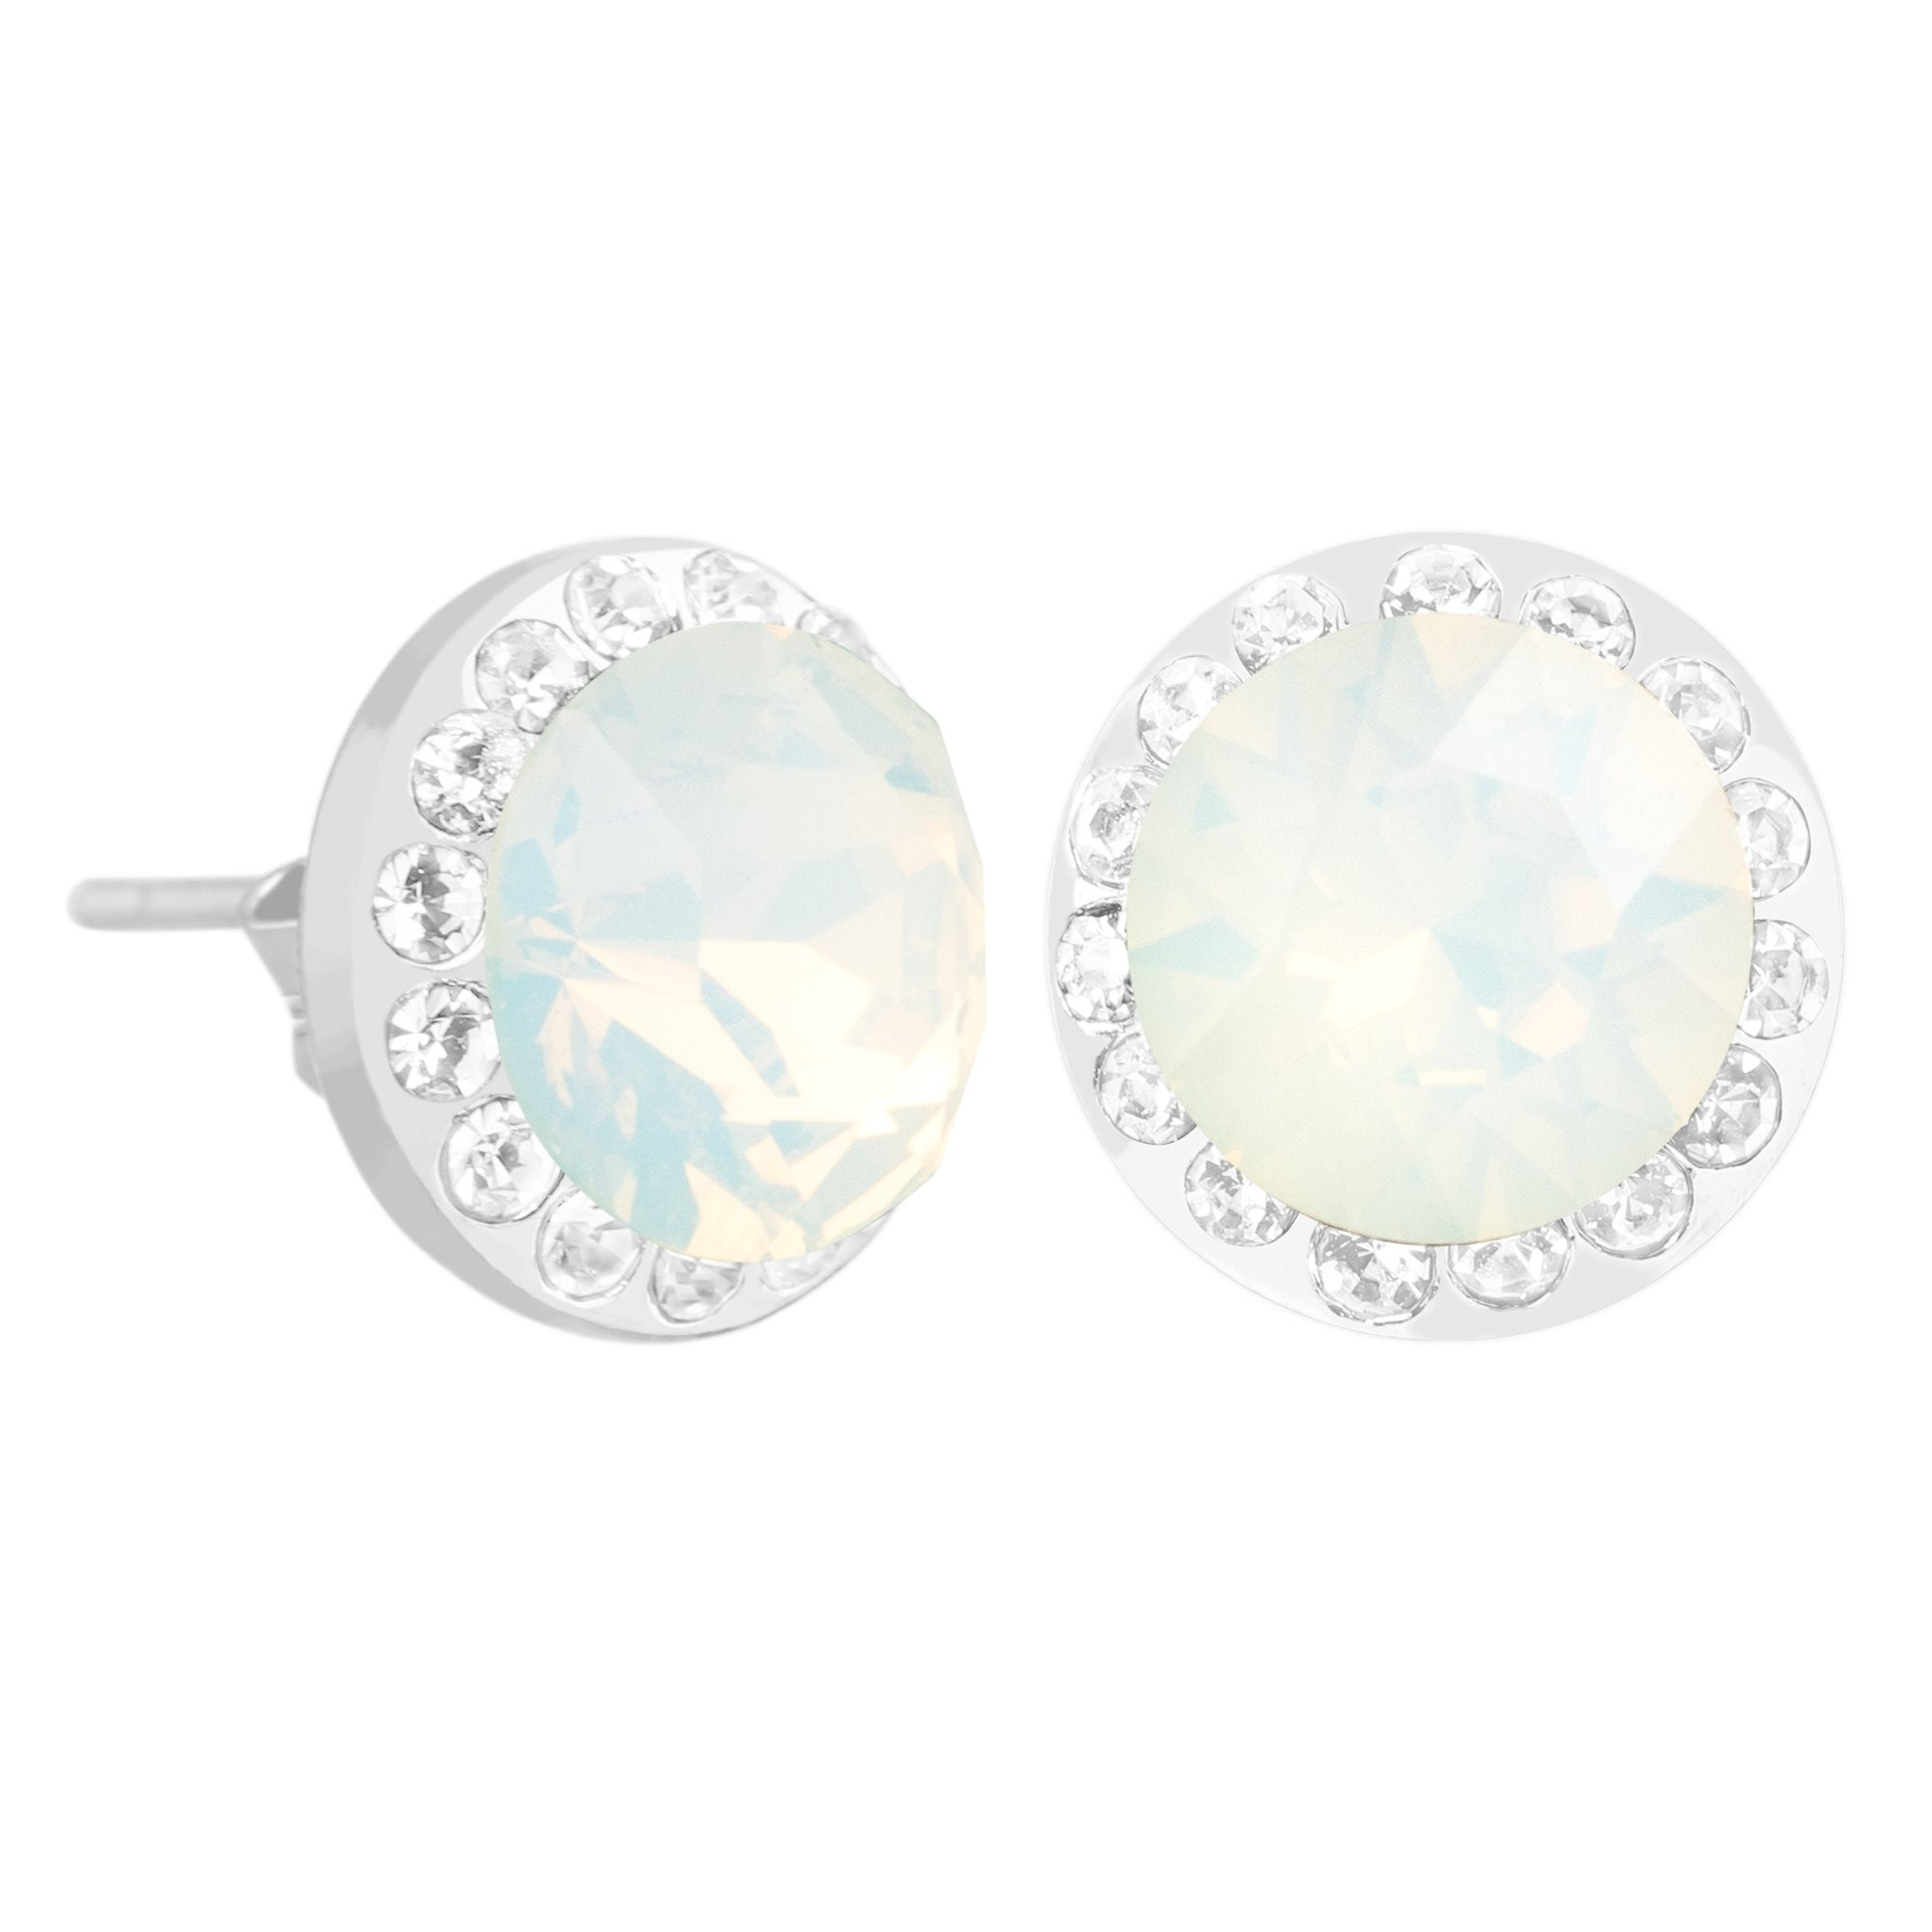 HALO EARRING WHITE OPAL EARRING - FOREVER - ESSENTIALS - WHITE OPAL 001